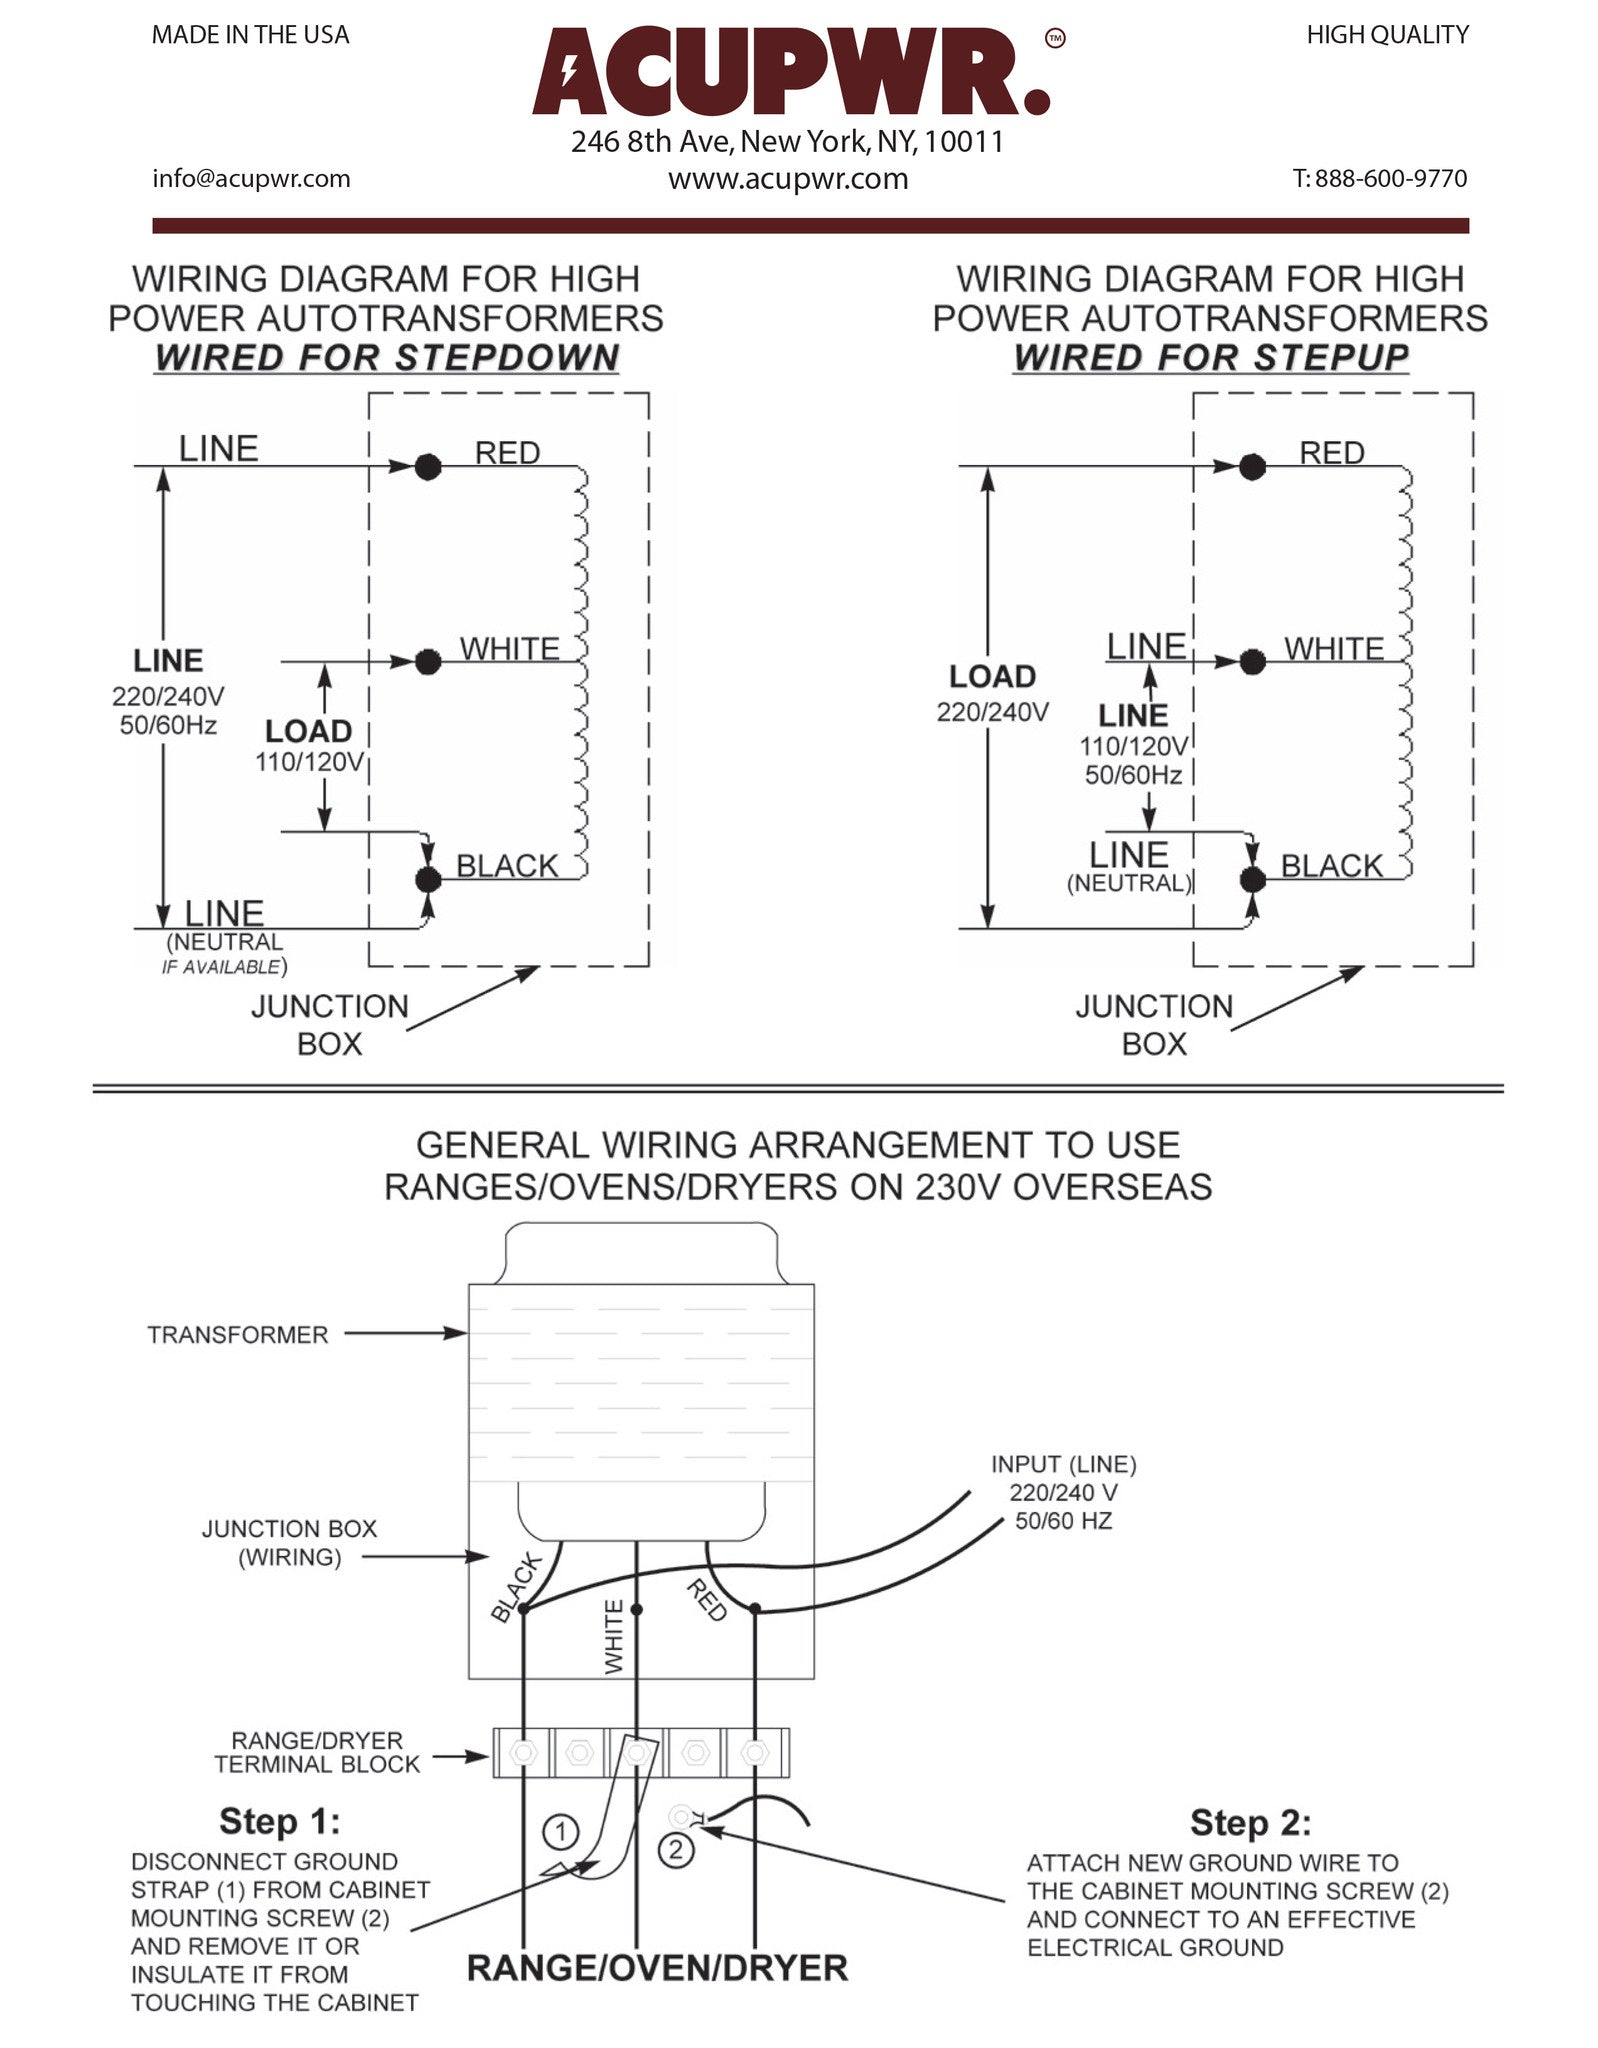 Aduh_Diagram_38ee0227 0107 4a34 96d3 1a7cb27ac531?v=1478031456 6000 tru watts™ step up step down hard wire voltage with knock  at eliteediting.co